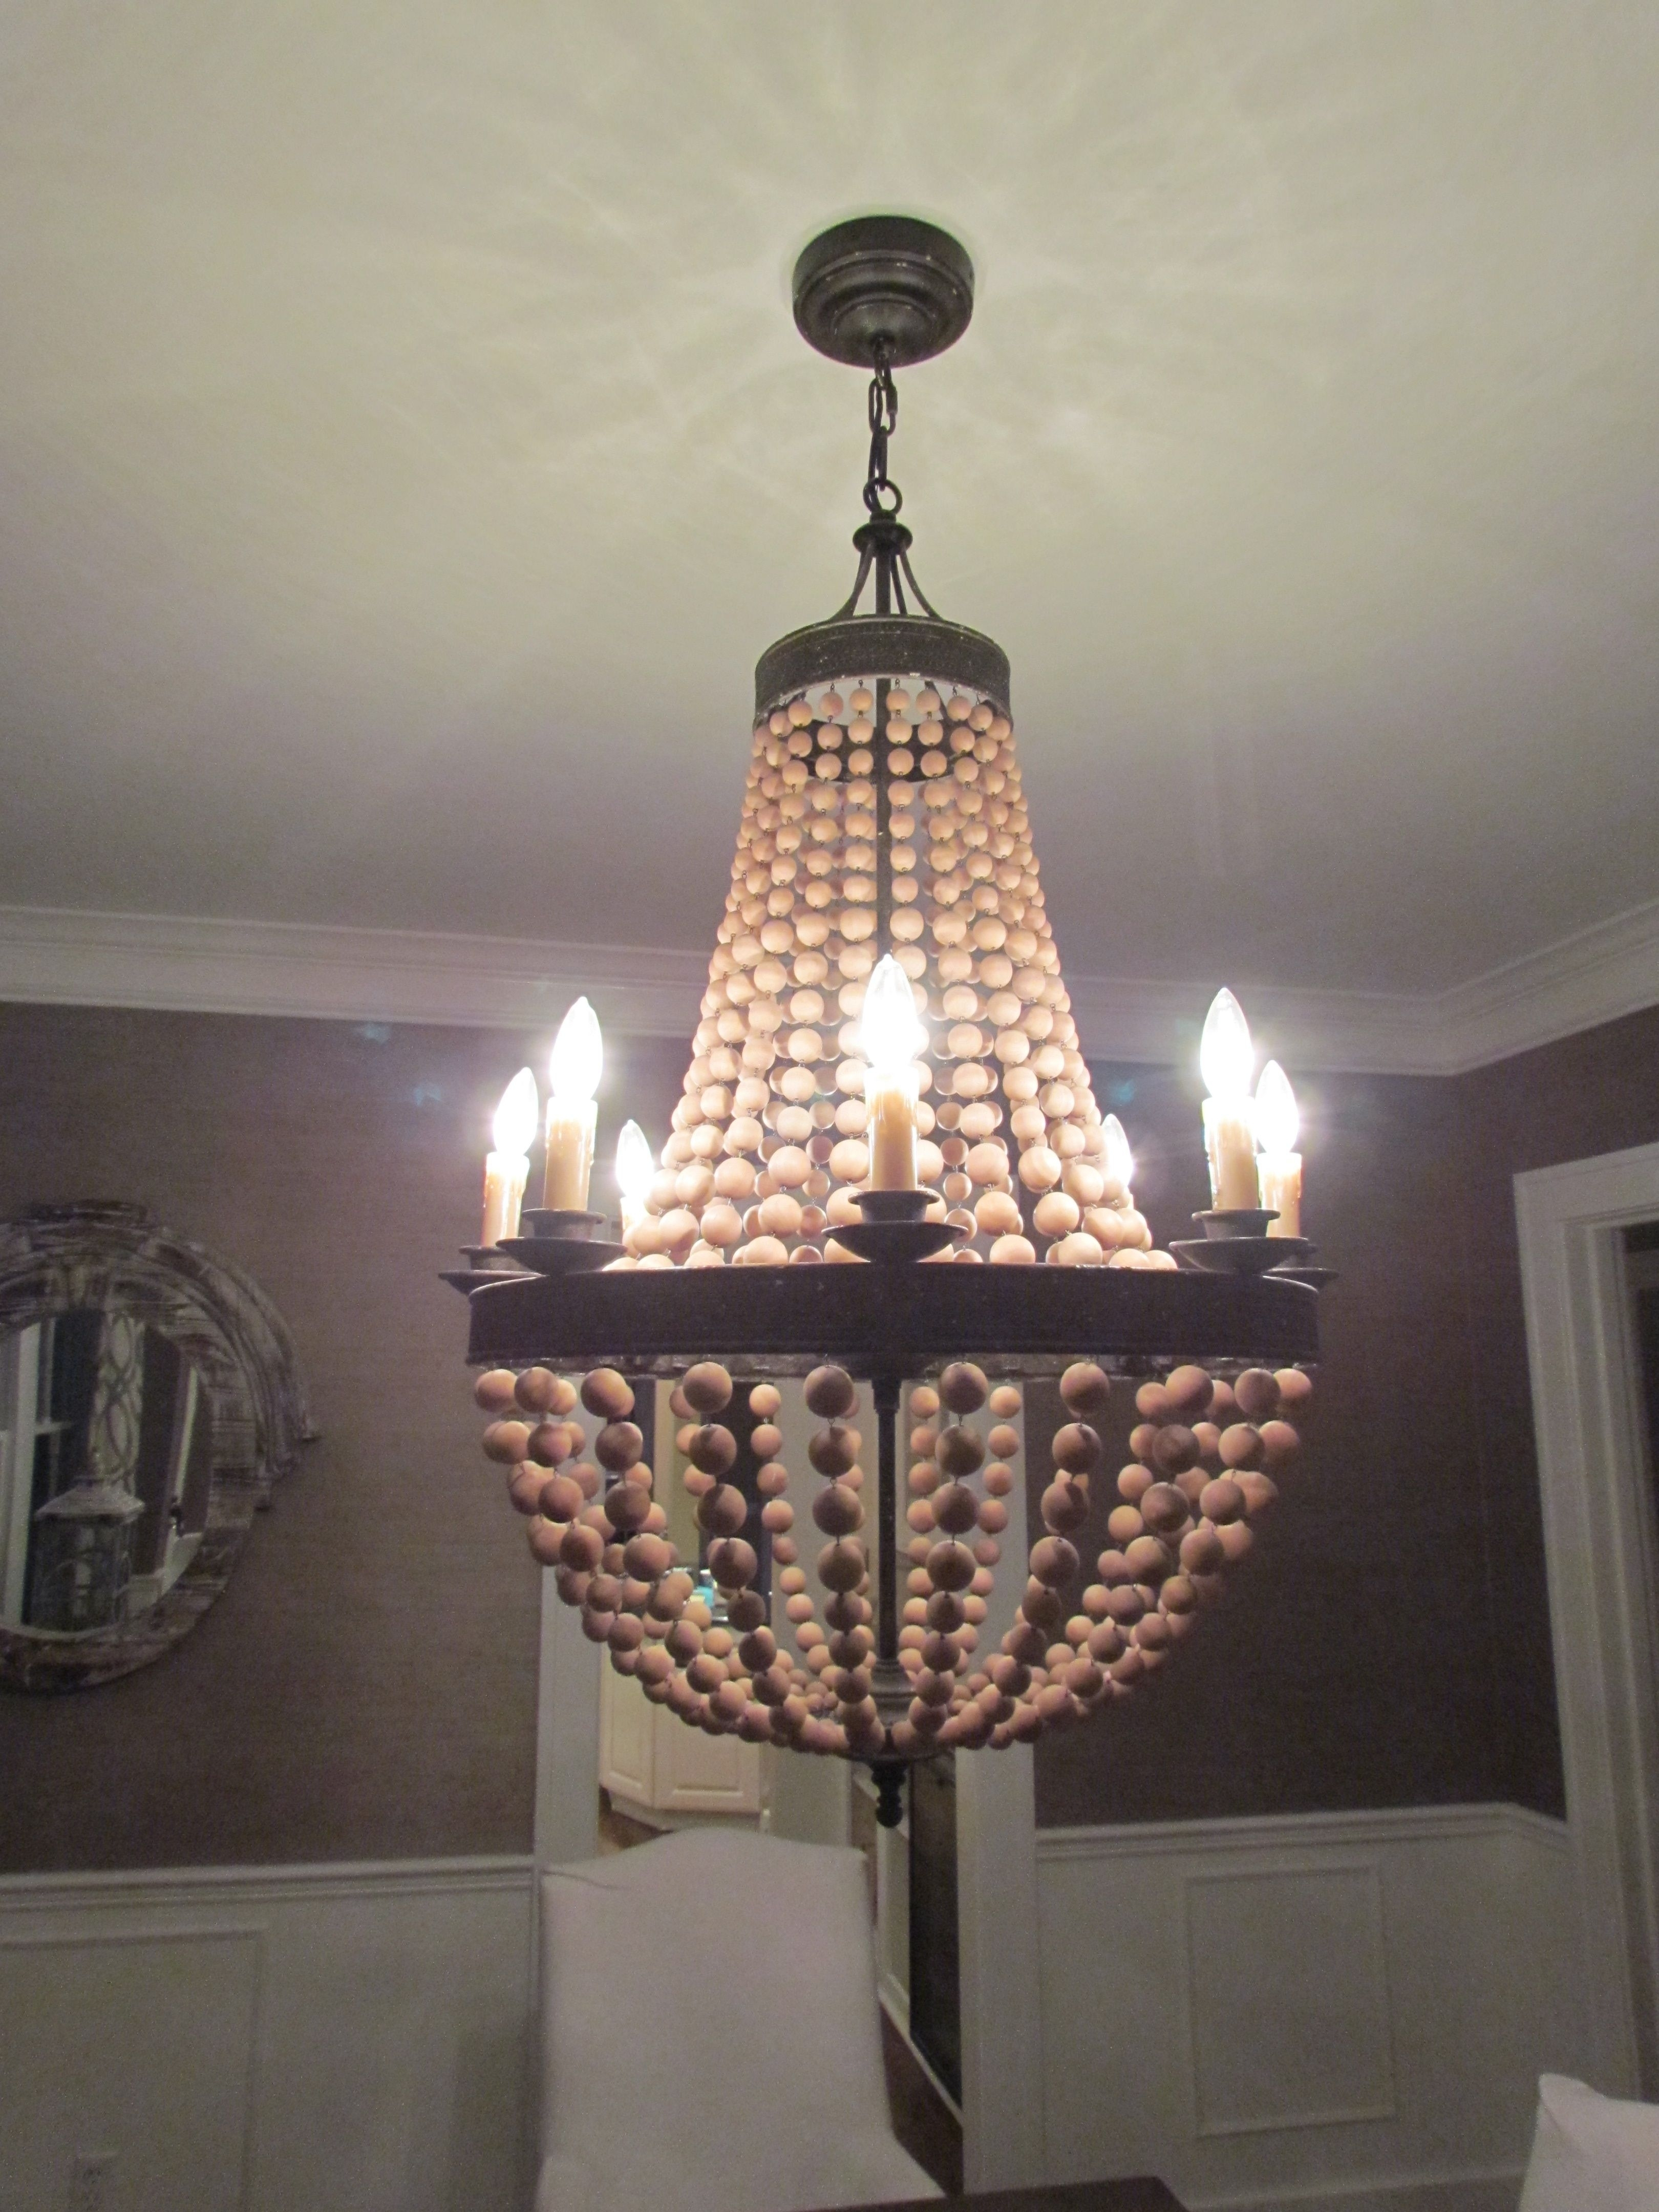 Pottery Barn Chandelier Knock Off Instructions Wine Bottle Lamp With Outdoor Lanterns At Pottery Barn (Photo 12 of 20)